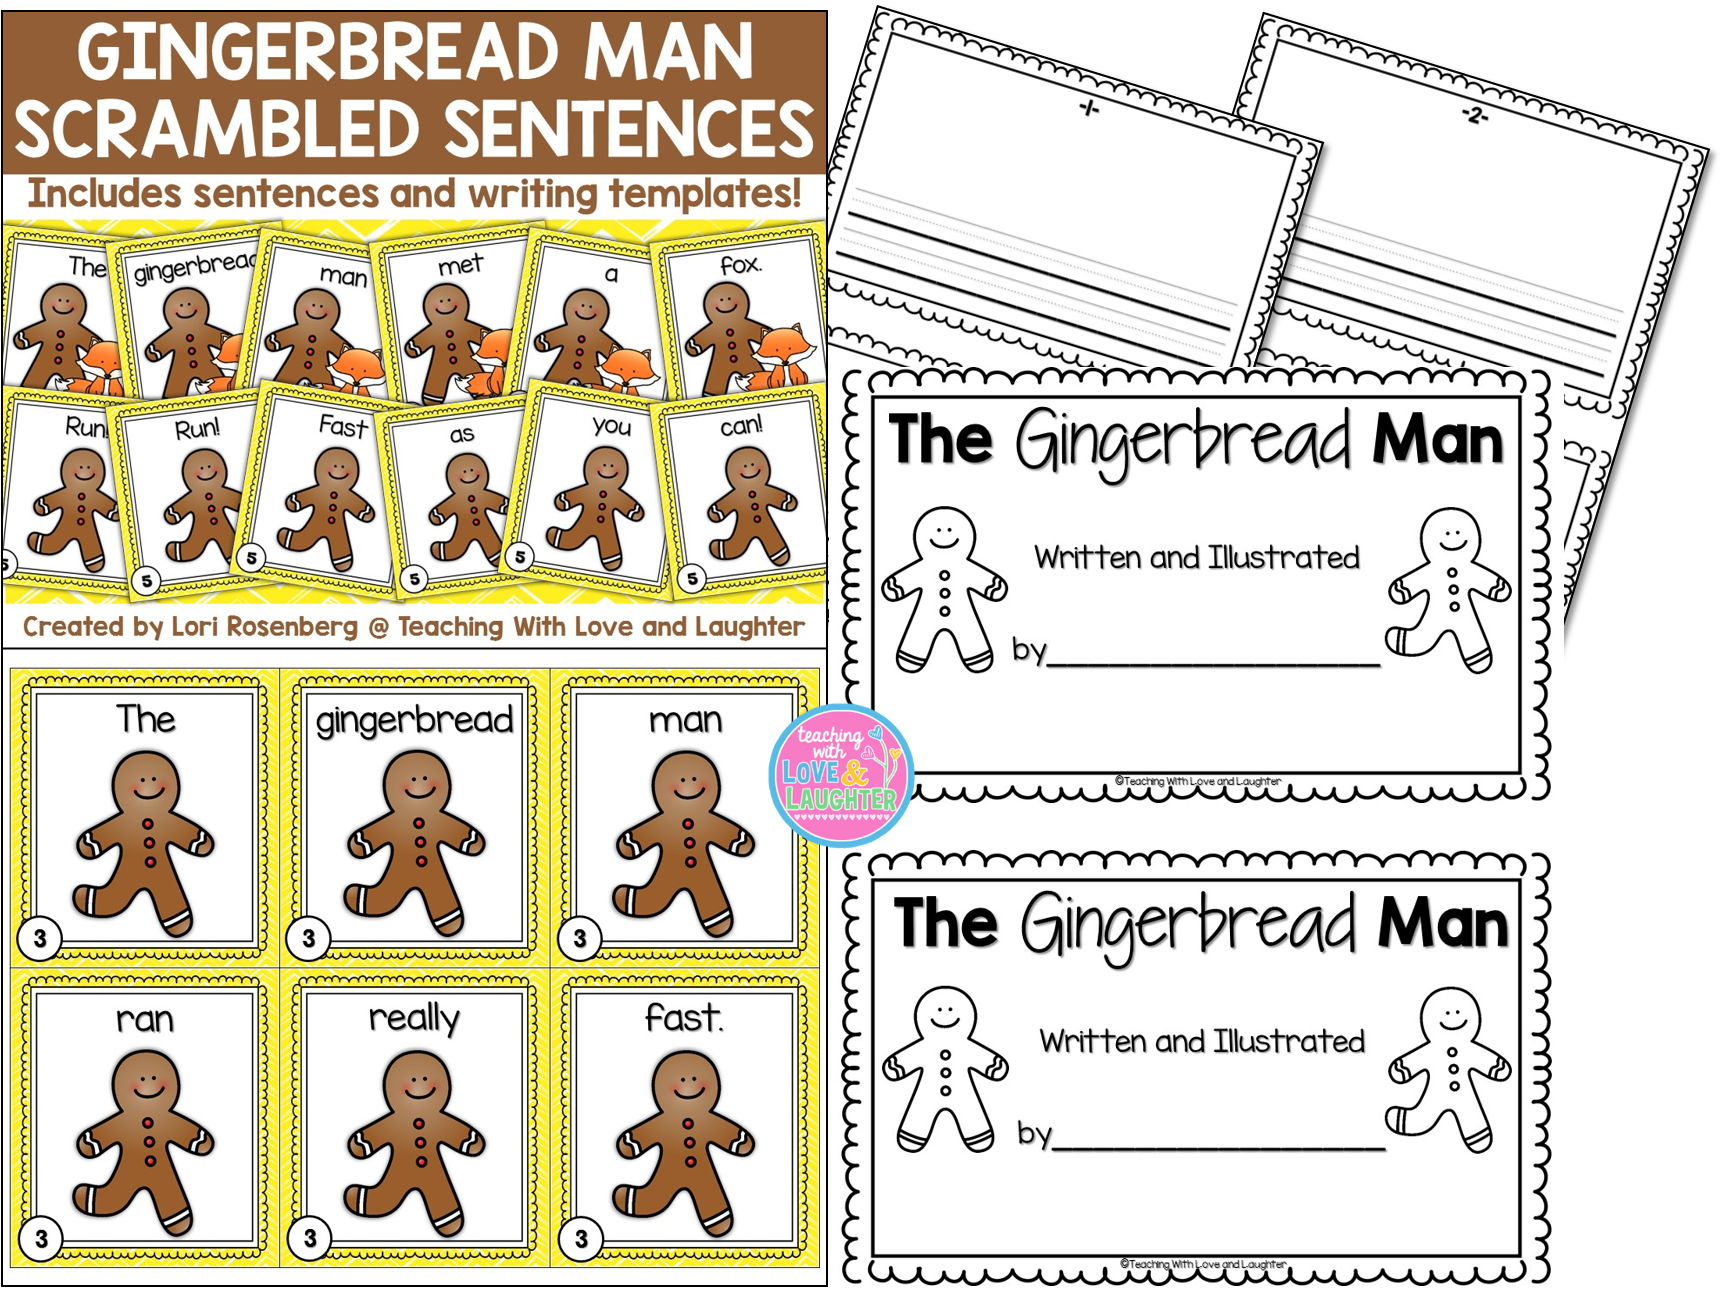 The Gingerbread Man Scrambled Sentences By Teaching With